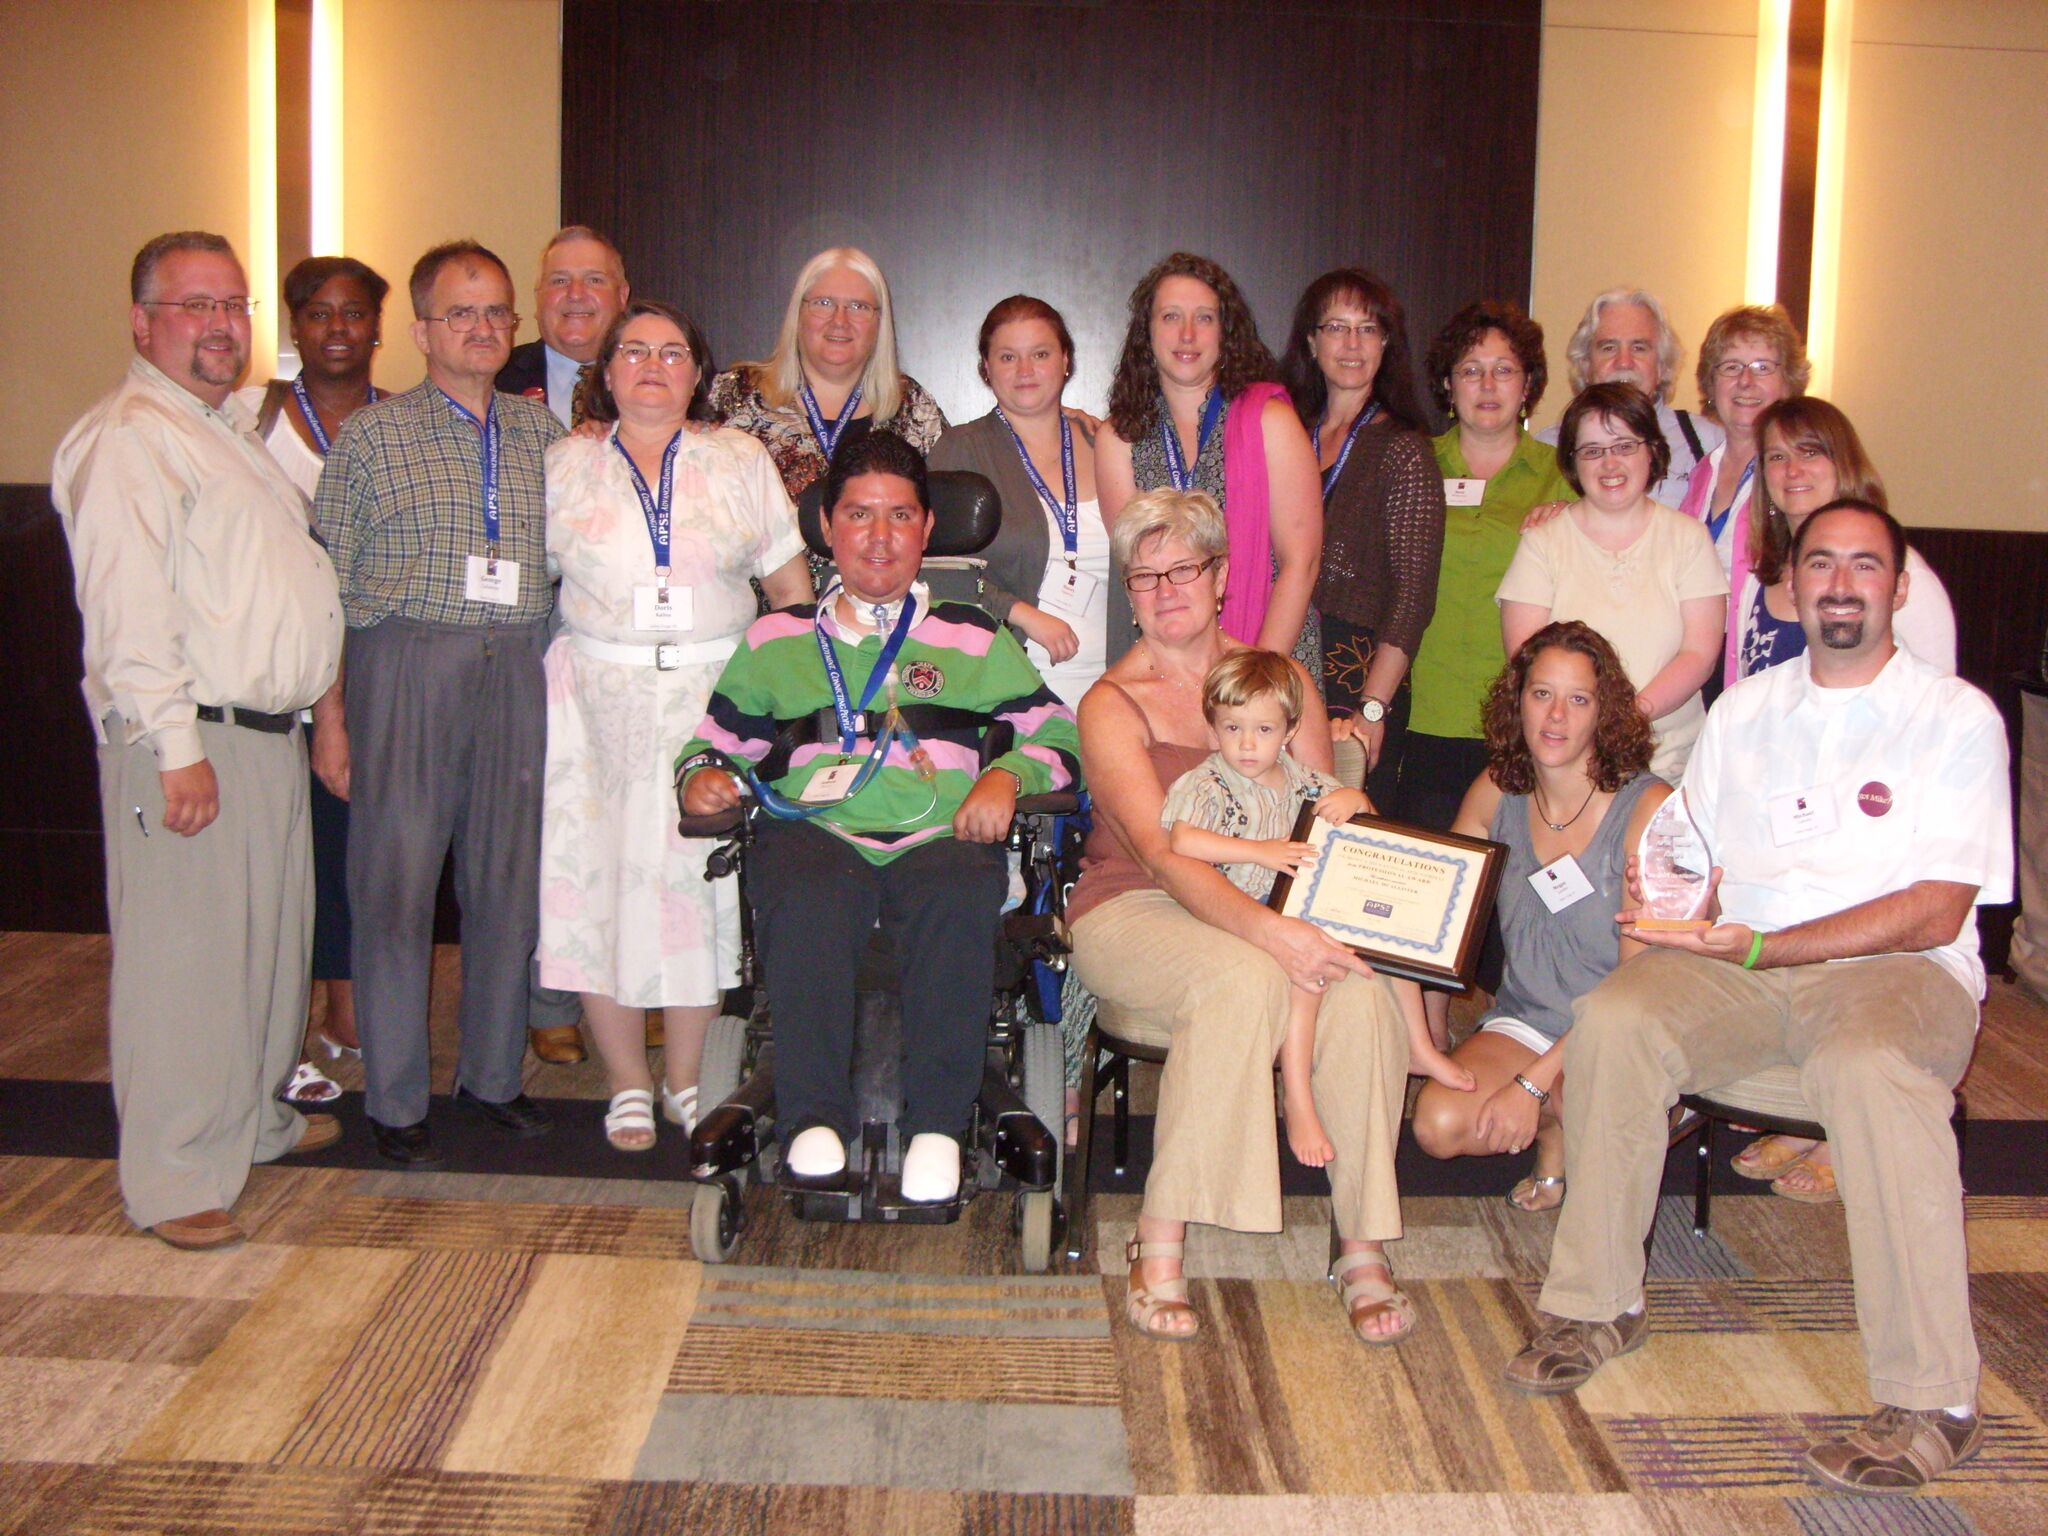 Coming together at 2010 APSE conference to remember Mike